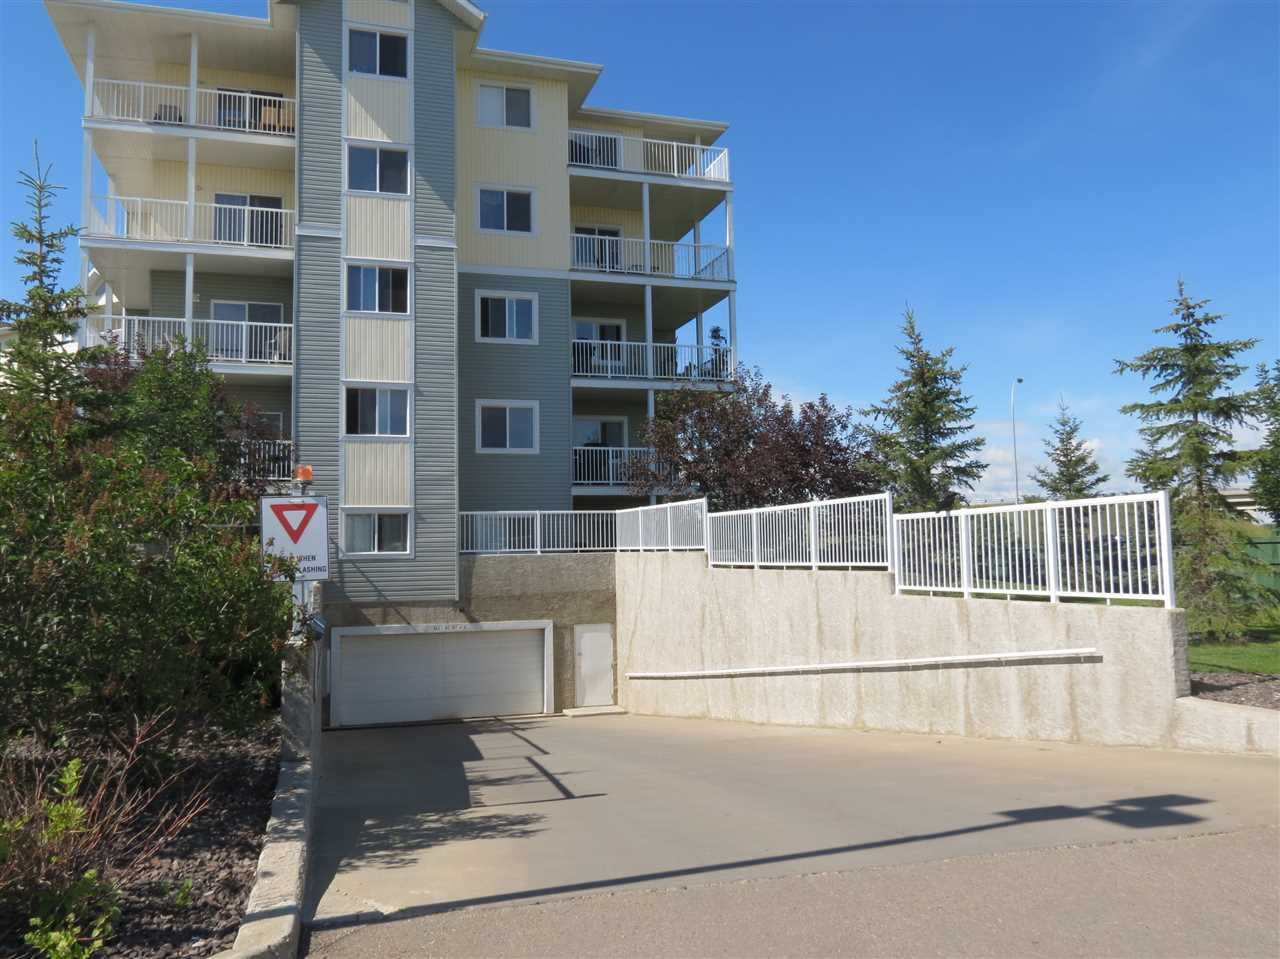 Photo 5: 106 9910 107 Street: Morinville Condo for sale : MLS(r) # E4040993